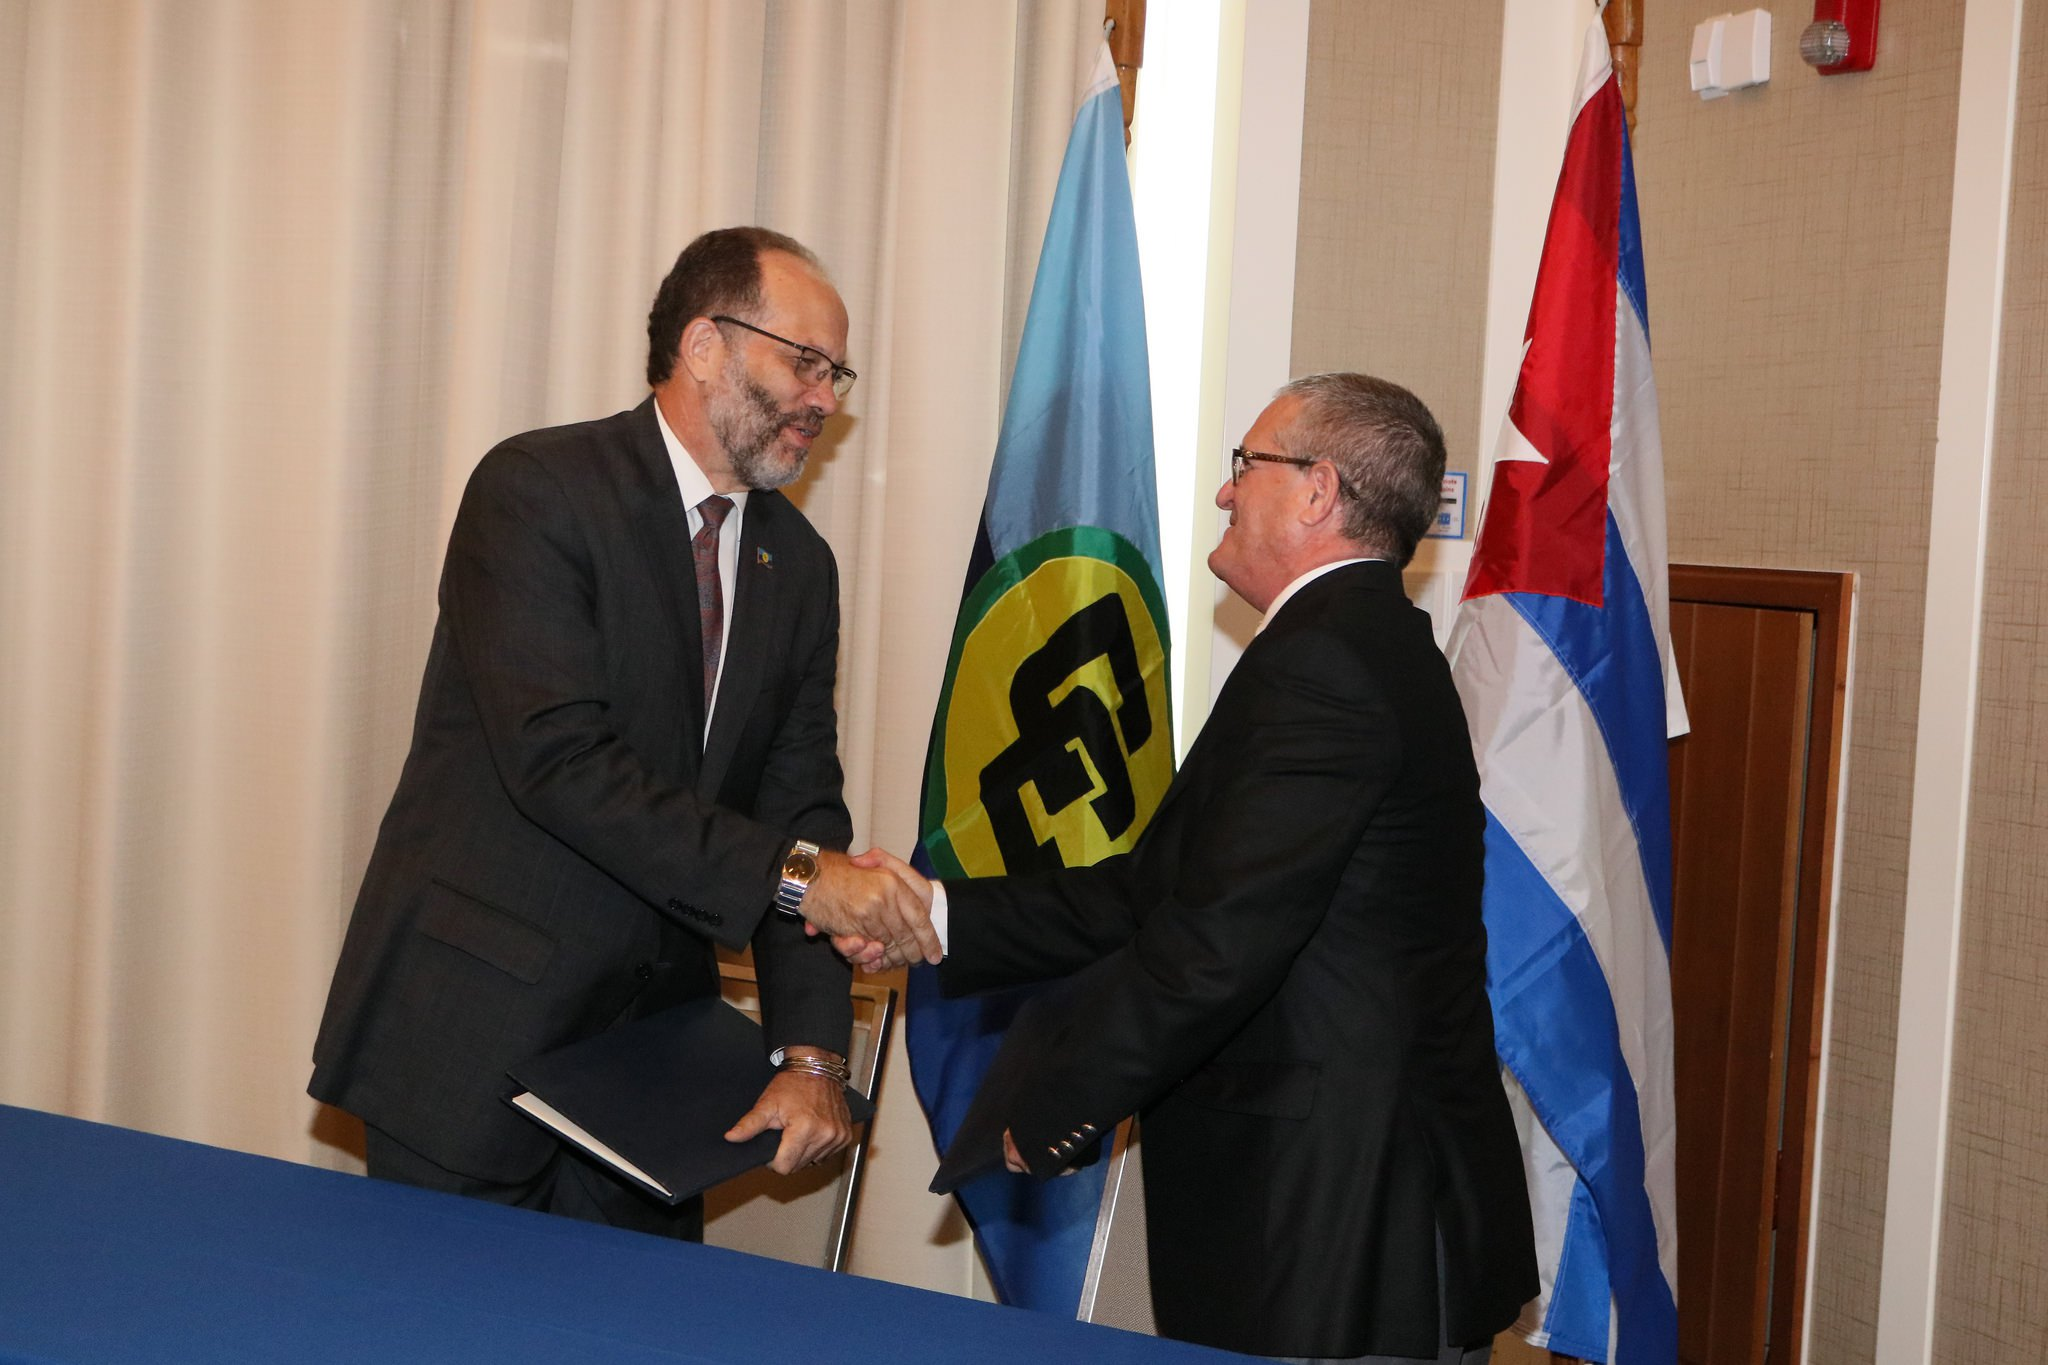 Caricom-cuba-signing-ceremony-hnadshake-between-sg-and-amb.-marchante